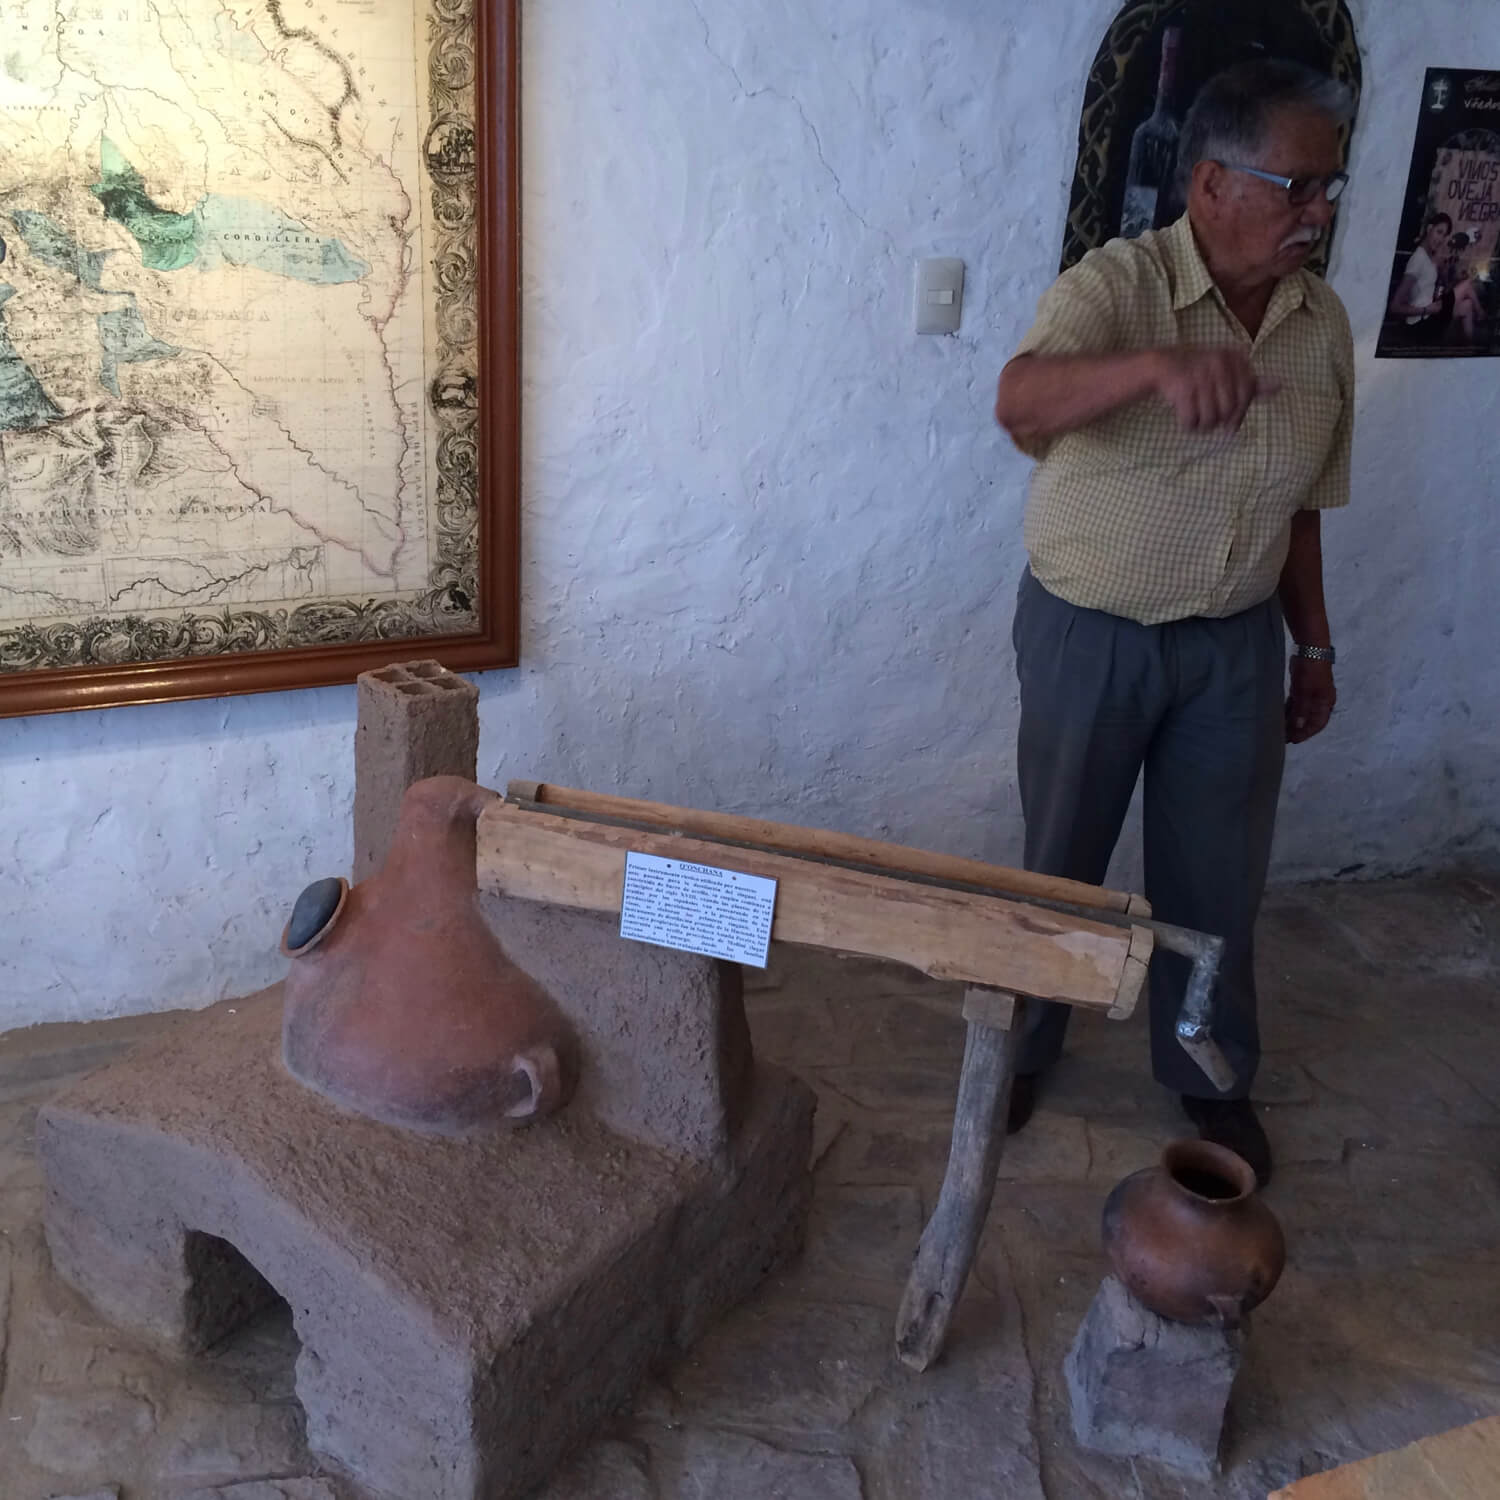 The founder of the Cinti Valley Museum of Anthropology and Enology explains the traditional method of Singani distillation in a Falca still.